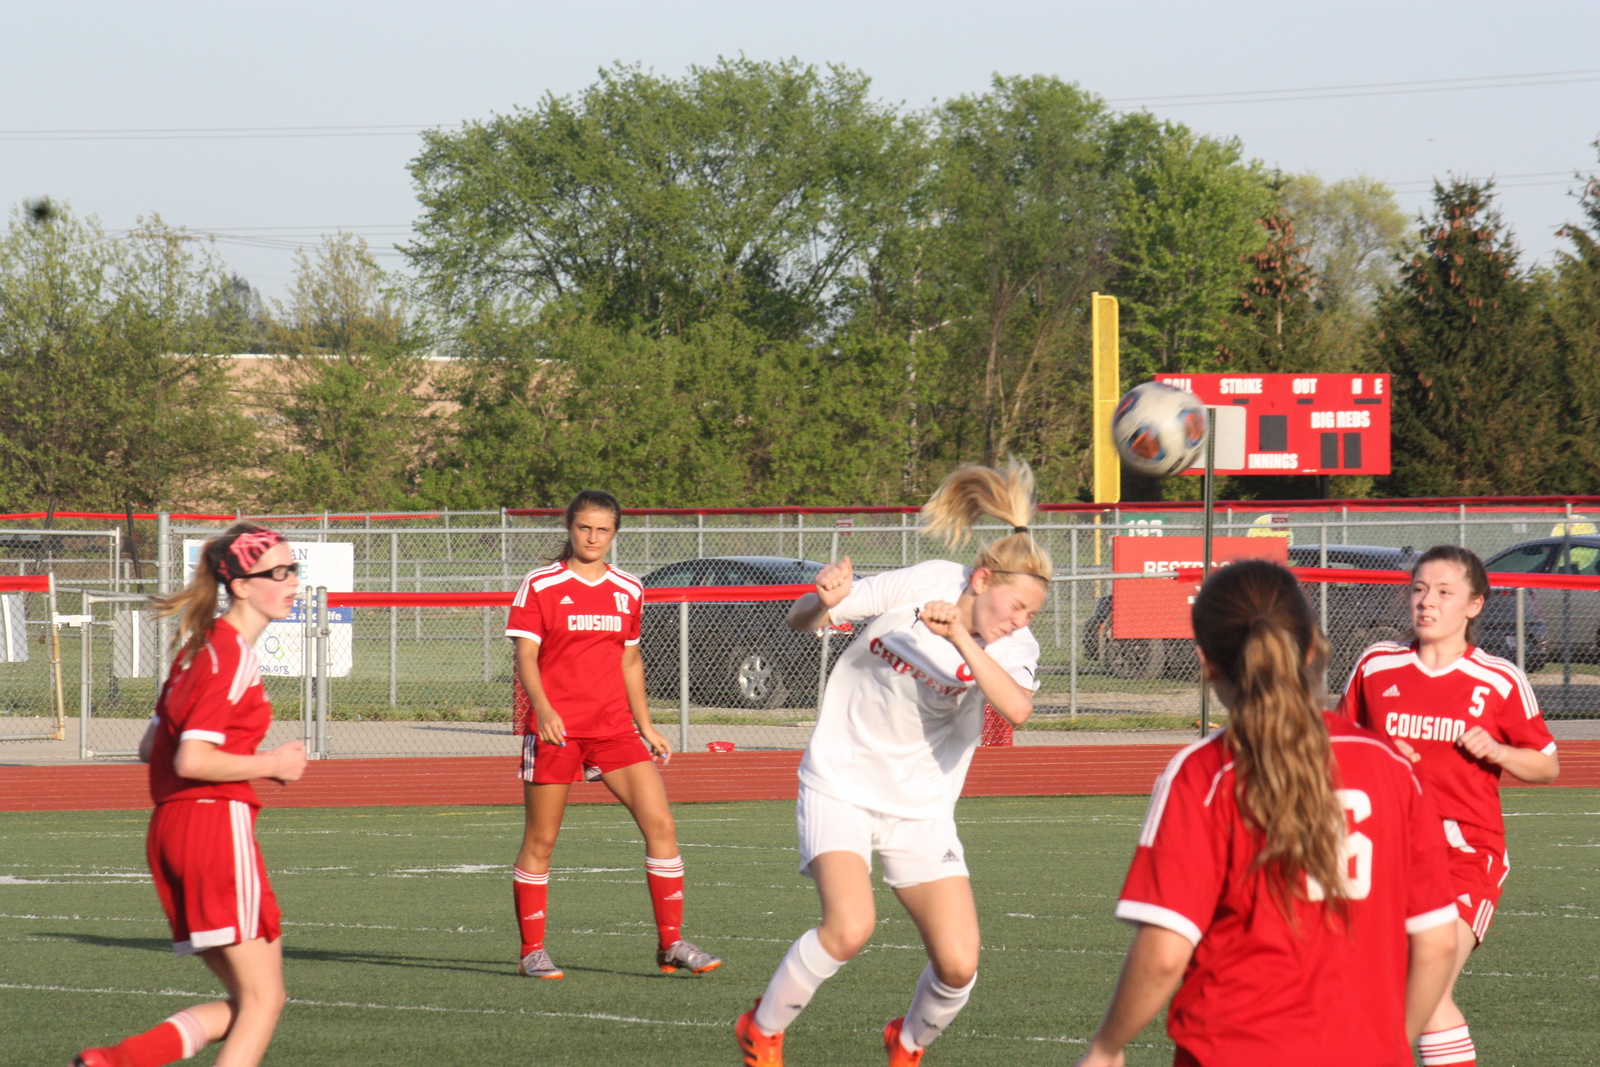 Chippewa Valley defeated visiting Cousino 8-0 in a MAC Blue Division match on May 14, 2018. (Photo gallery by Kevin Lozon)